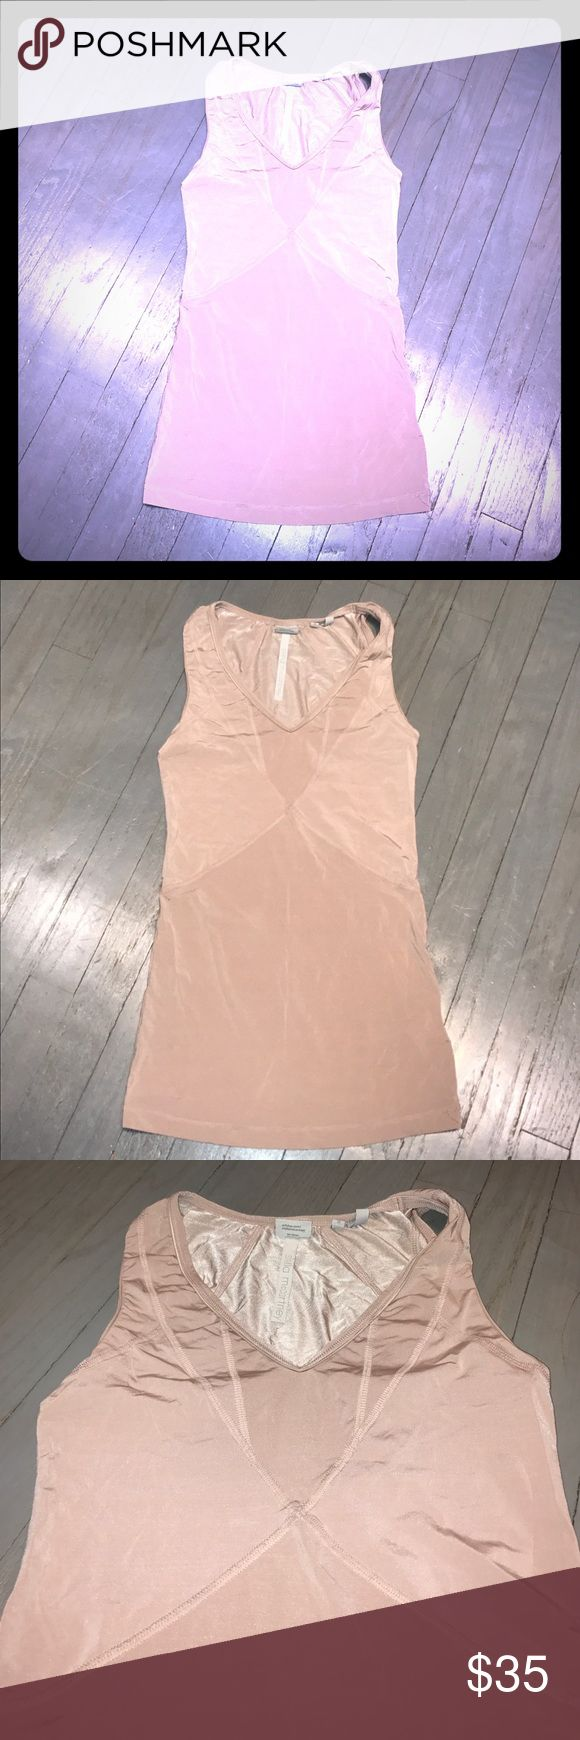 Stella McCartney for Adidas pink vneck tank top EC Stella McCartney for Adidas muted light pink dusty rose v neck sleeveless fitted workout tank top. Contour stitching throughout. Excellent condition. Matching jacket for sale in another listing Adidas by Stella McCartney Tops Tank Tops